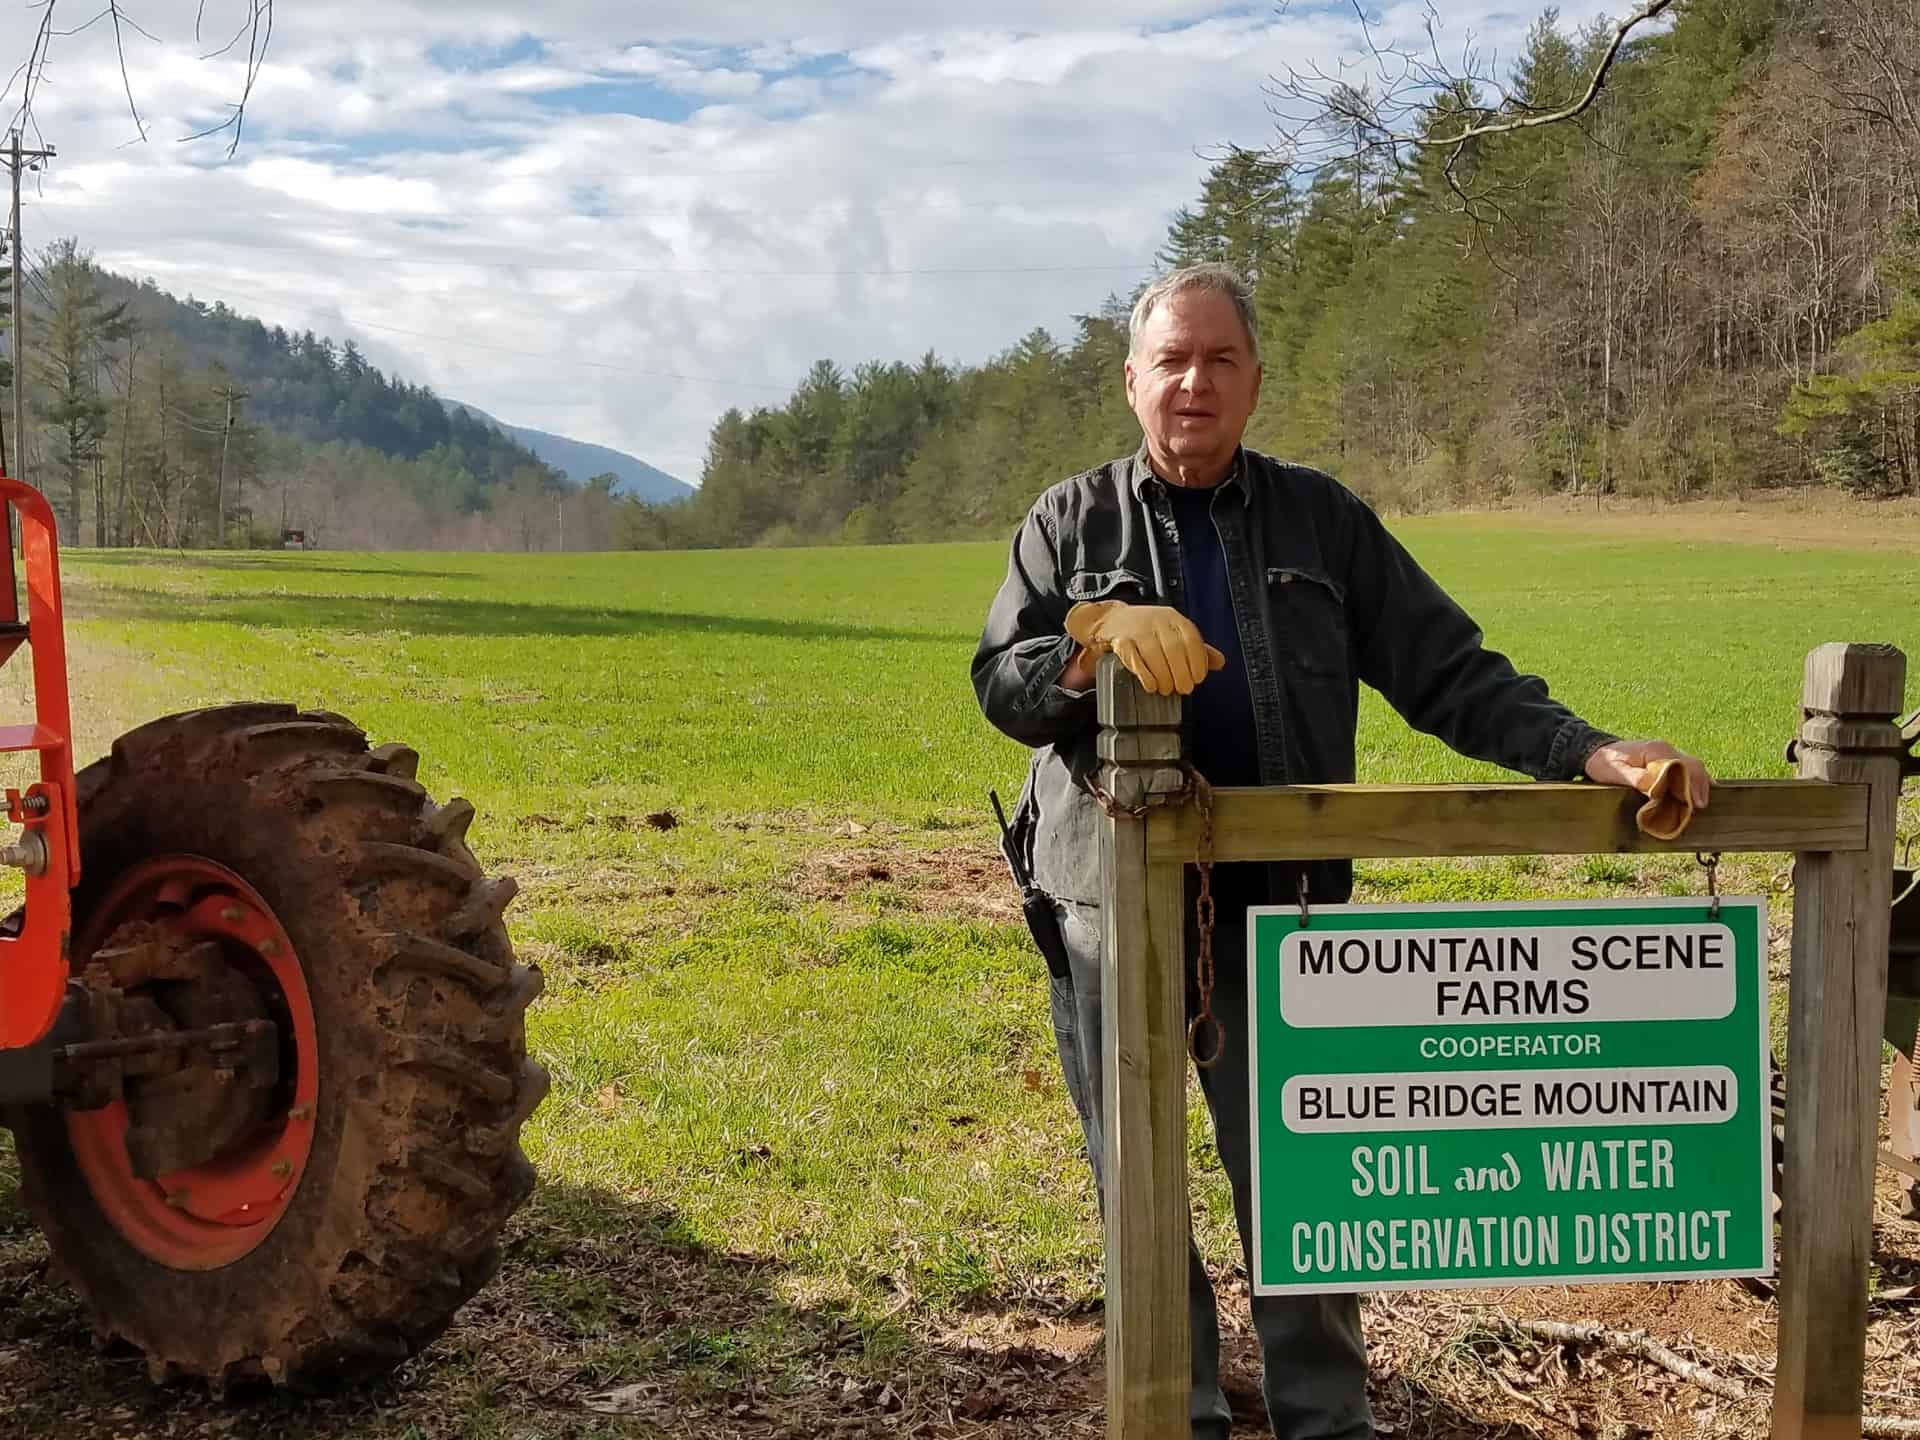 Frank standing next to a tractor and a sign indicating that his farm, Mountain Scenes Farm, is a cooperator with the Blue Ridge Mountains Soil and Water Conservation District